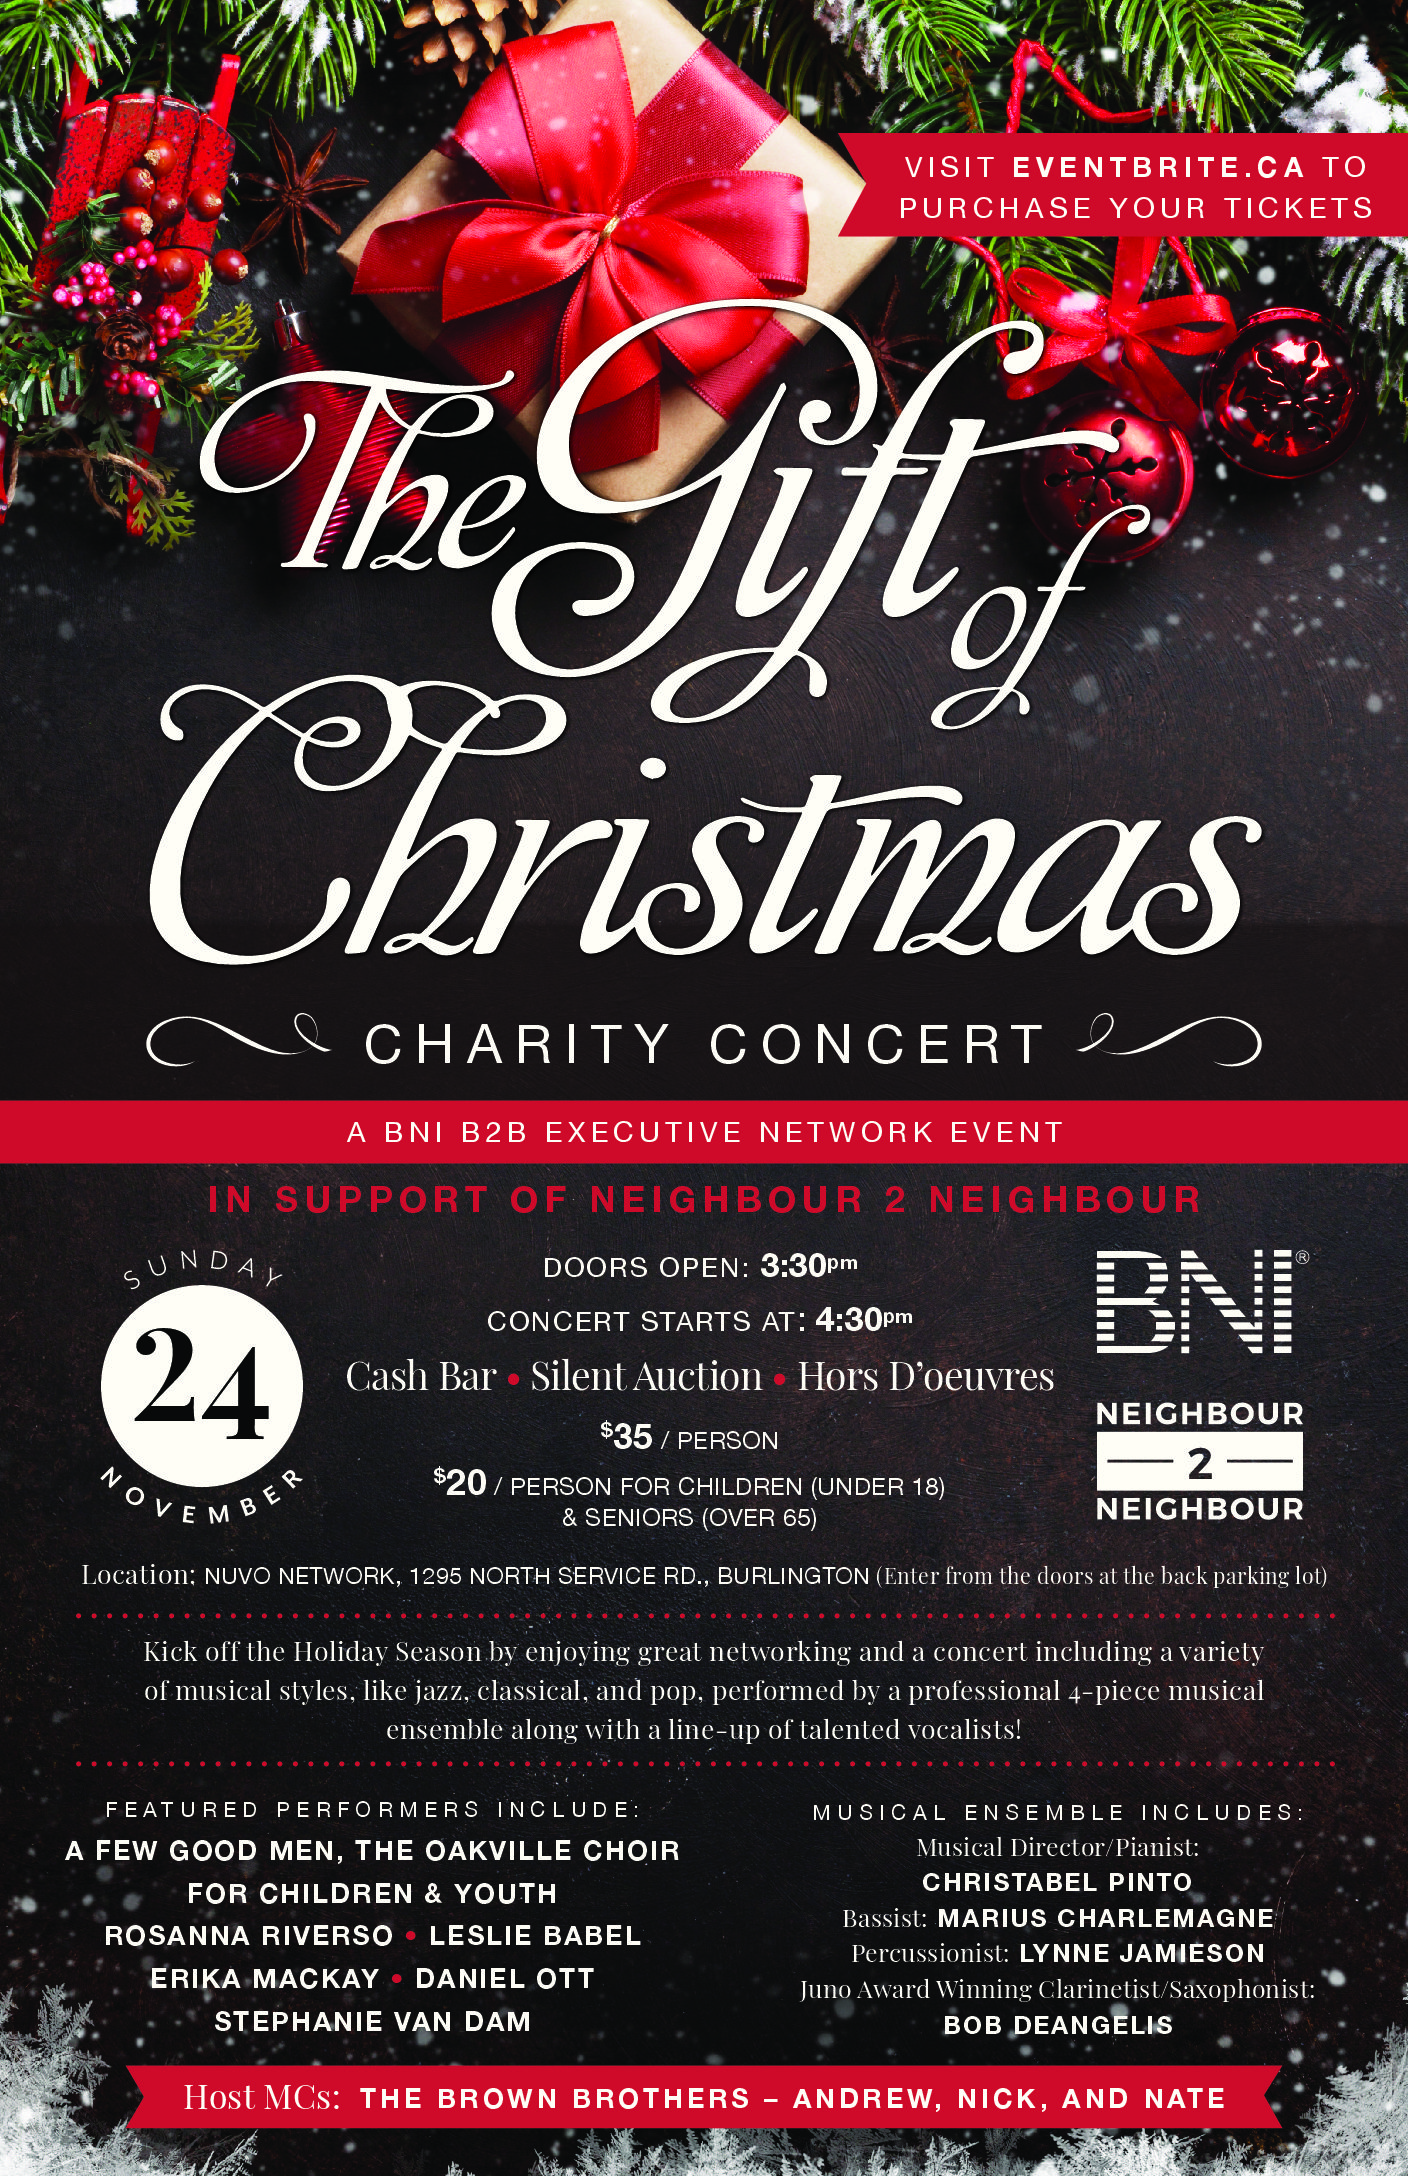 The Gift of Christmas Charity Concert – A BNI B2BExecutive Network Event